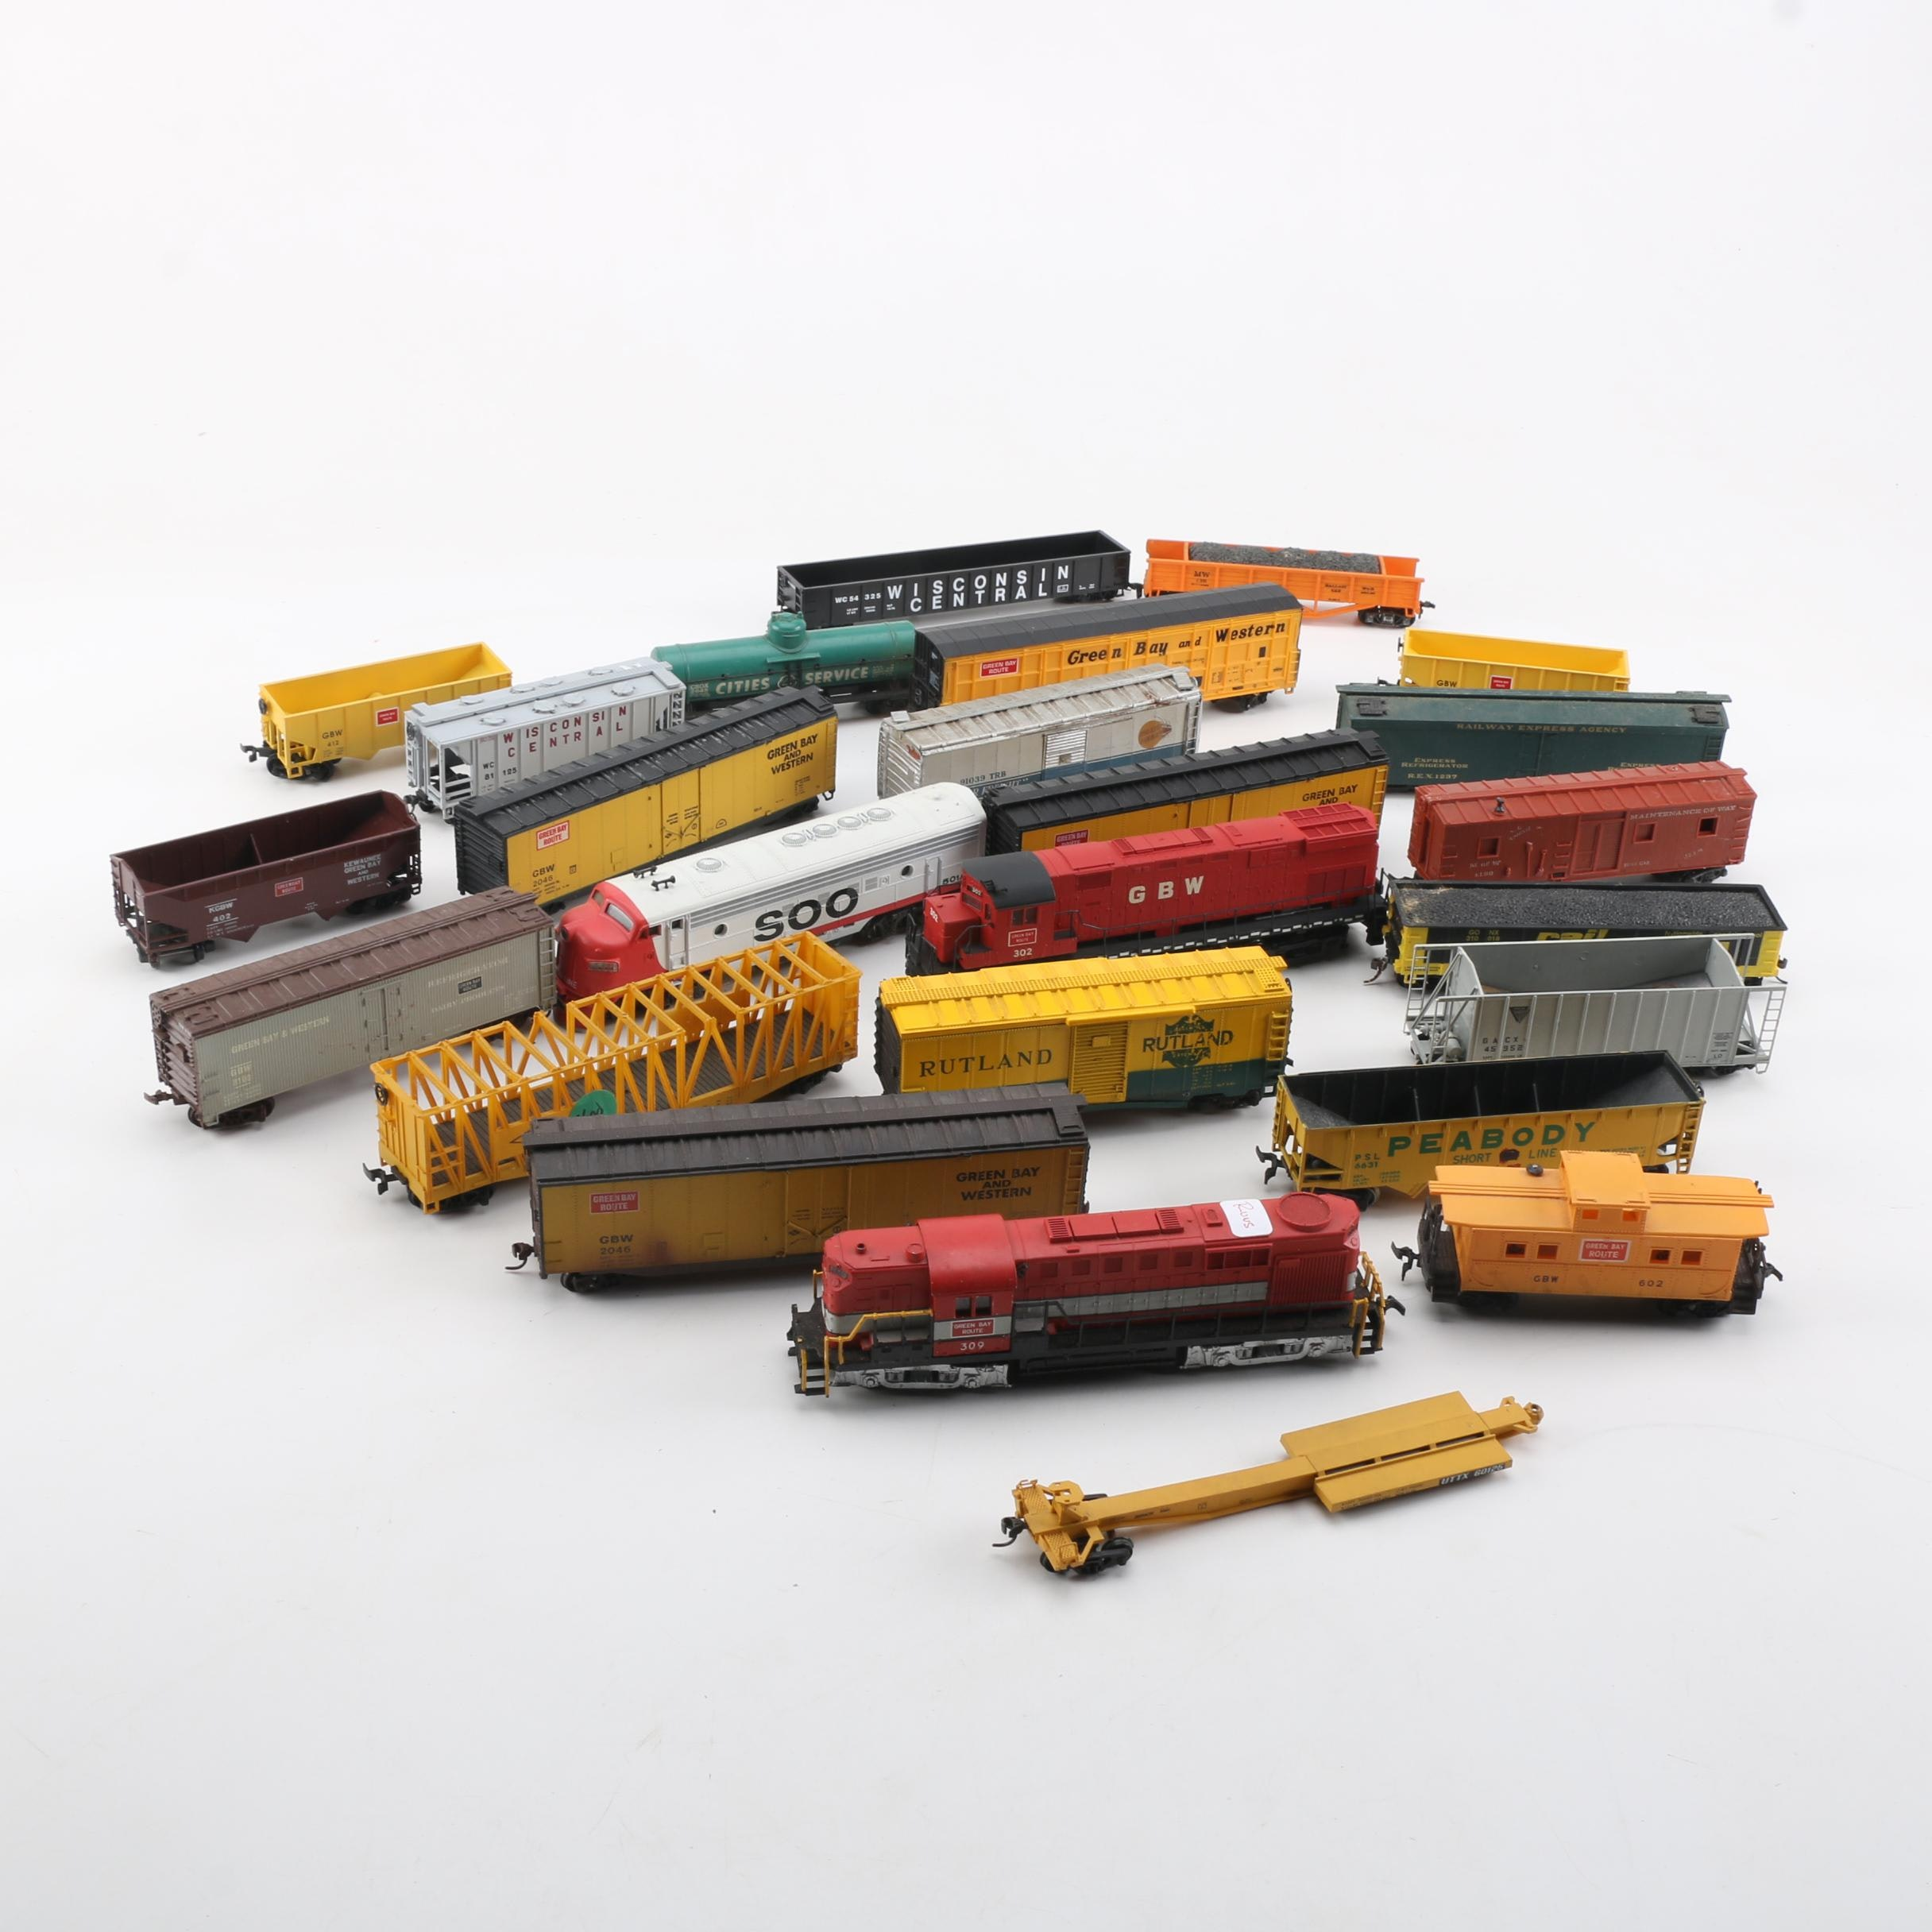 HO Scale Diesel Engines and Other Train Cars